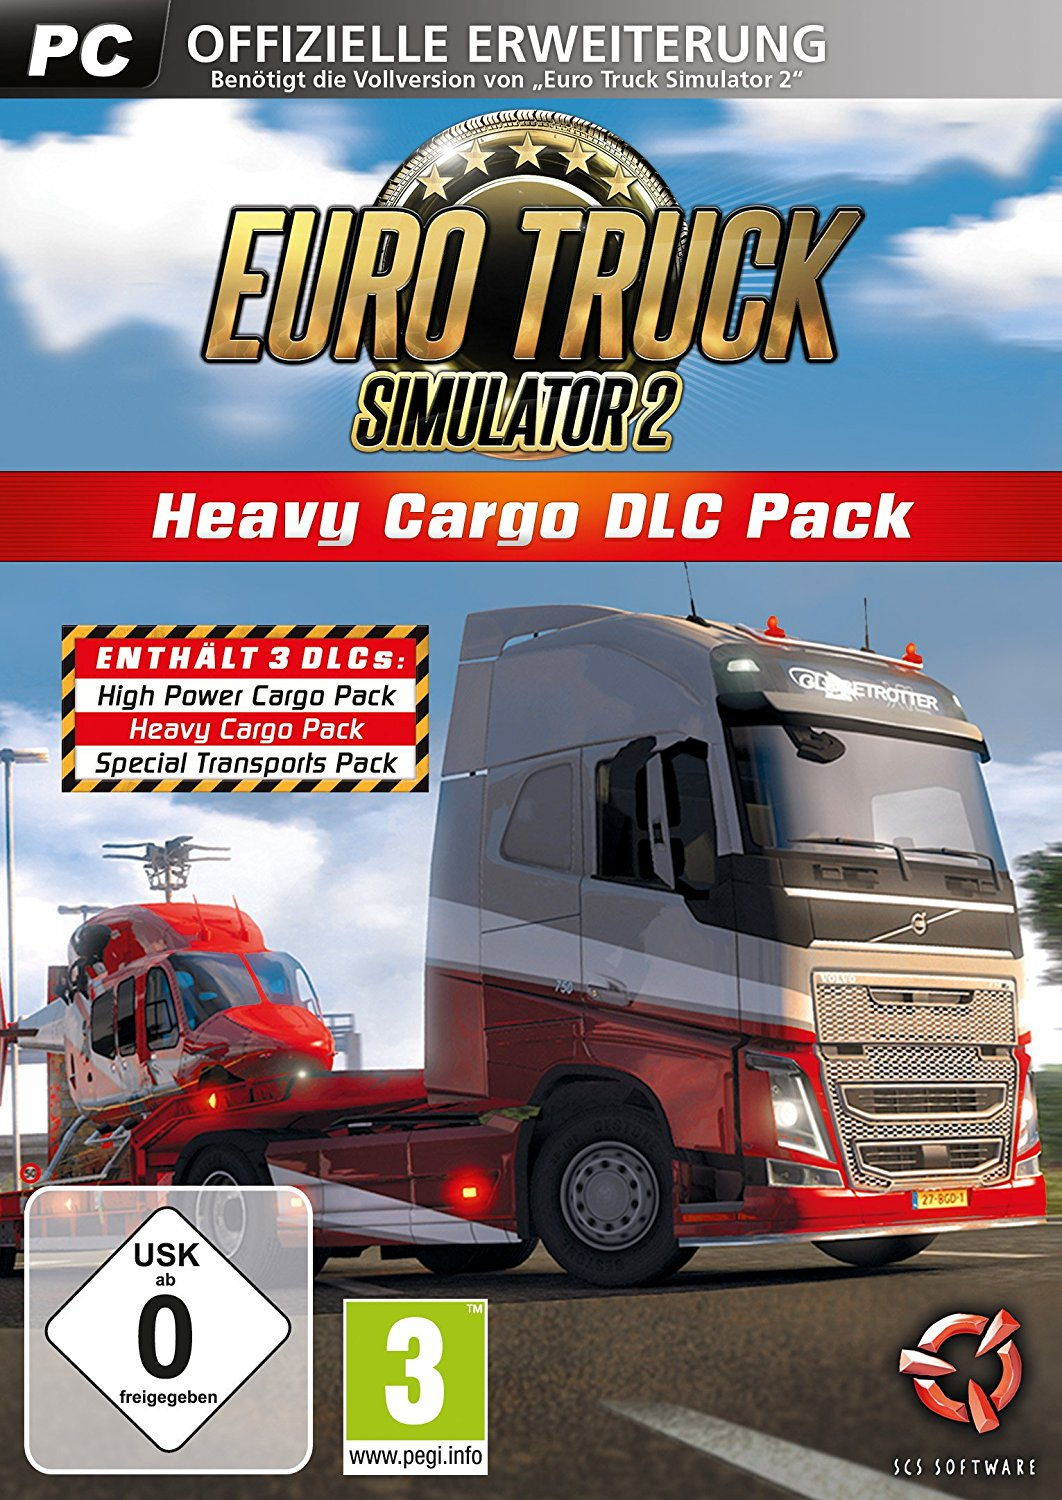 Euro Truck Simulator 2 - Heavy Cargo Edition - DLC Pack (DLC only)